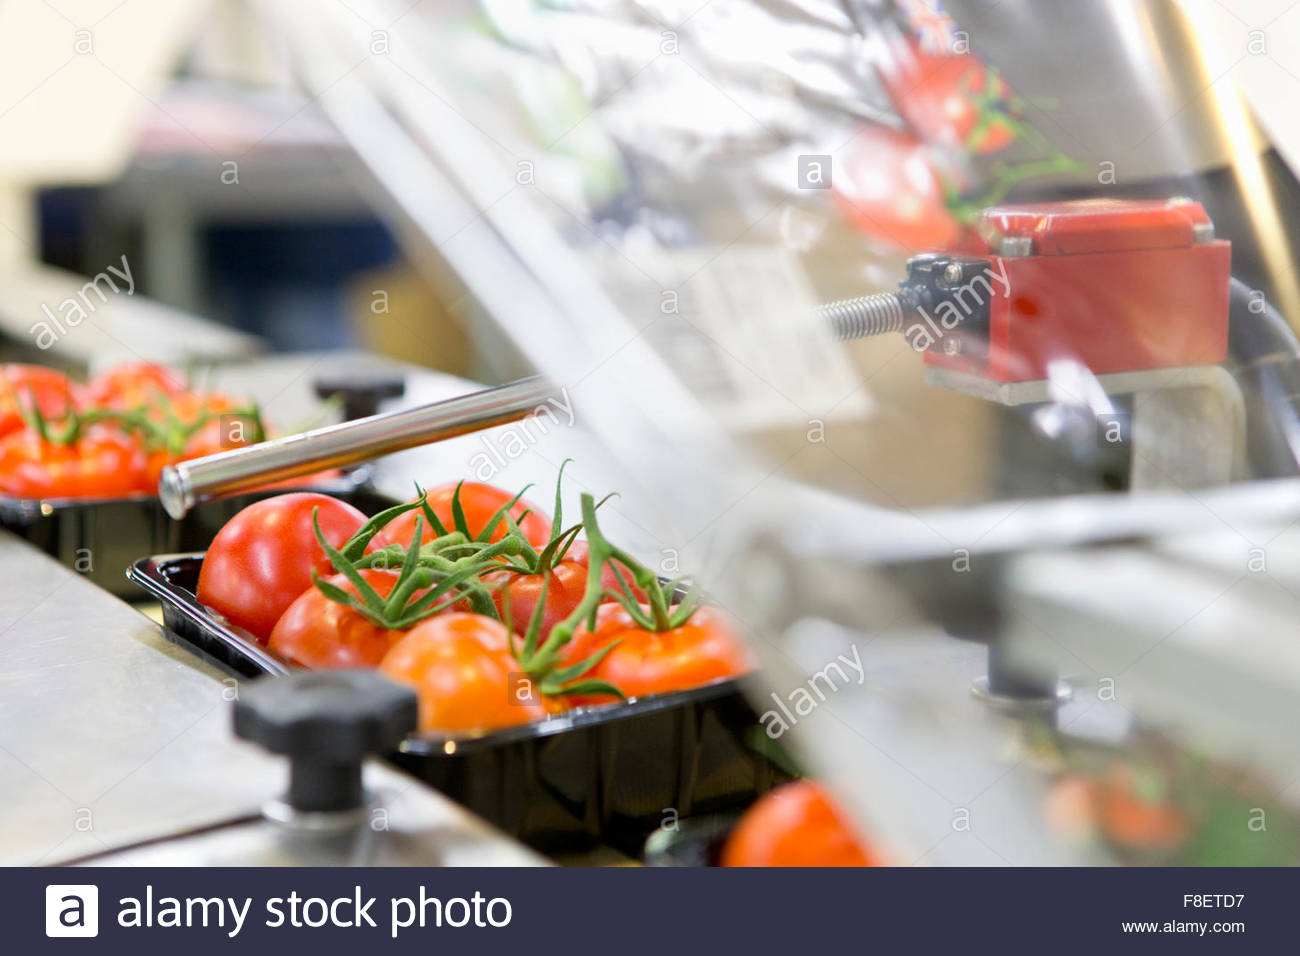 Packages of ripe red vine tomatoes on production line in food processing plant Stock Photo